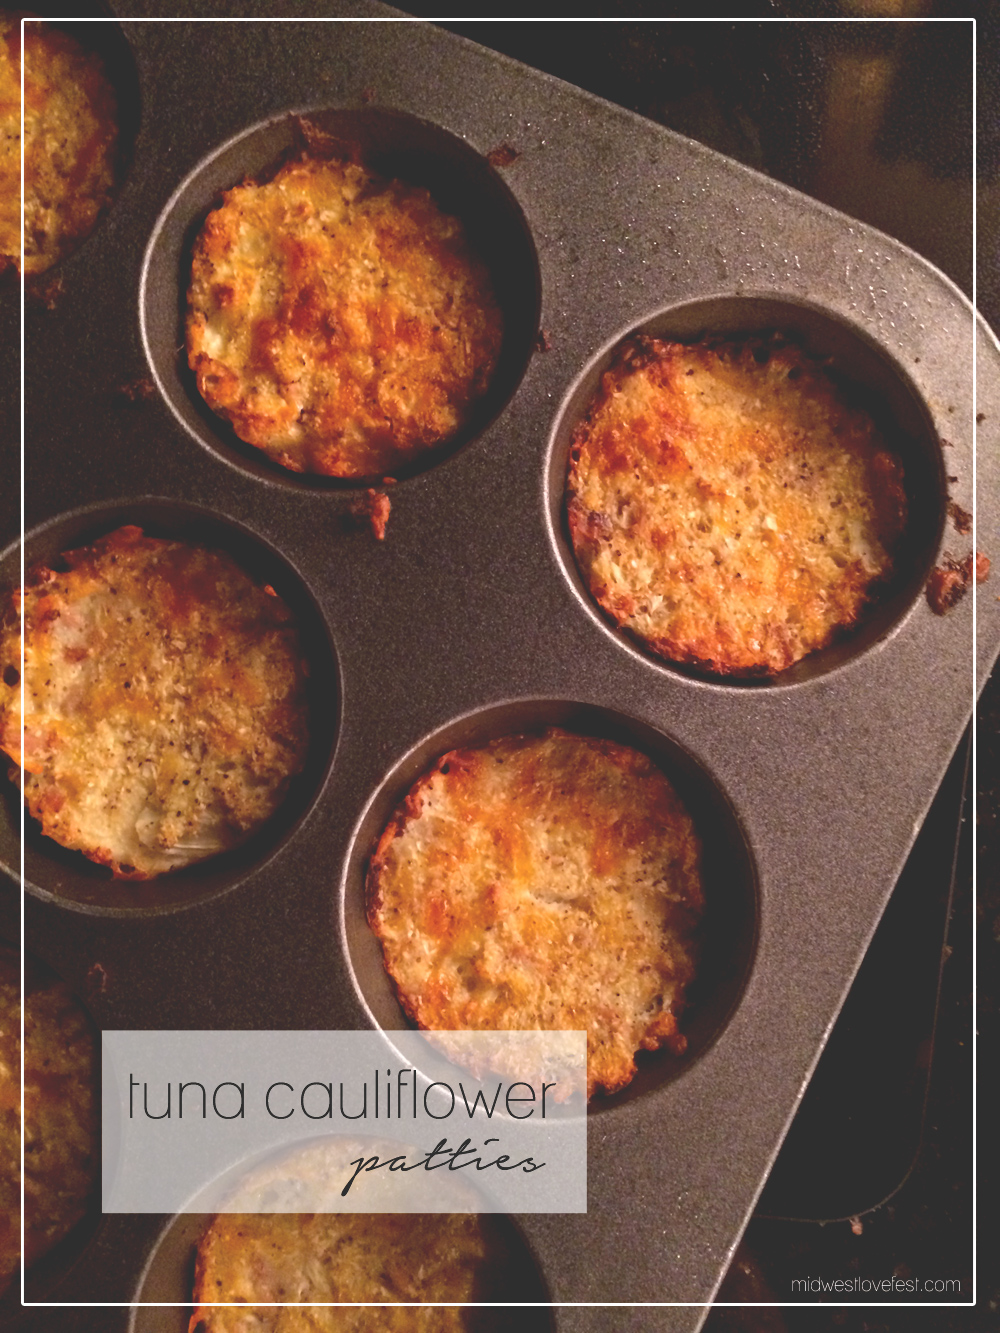 tuna cauliflower patty recipe